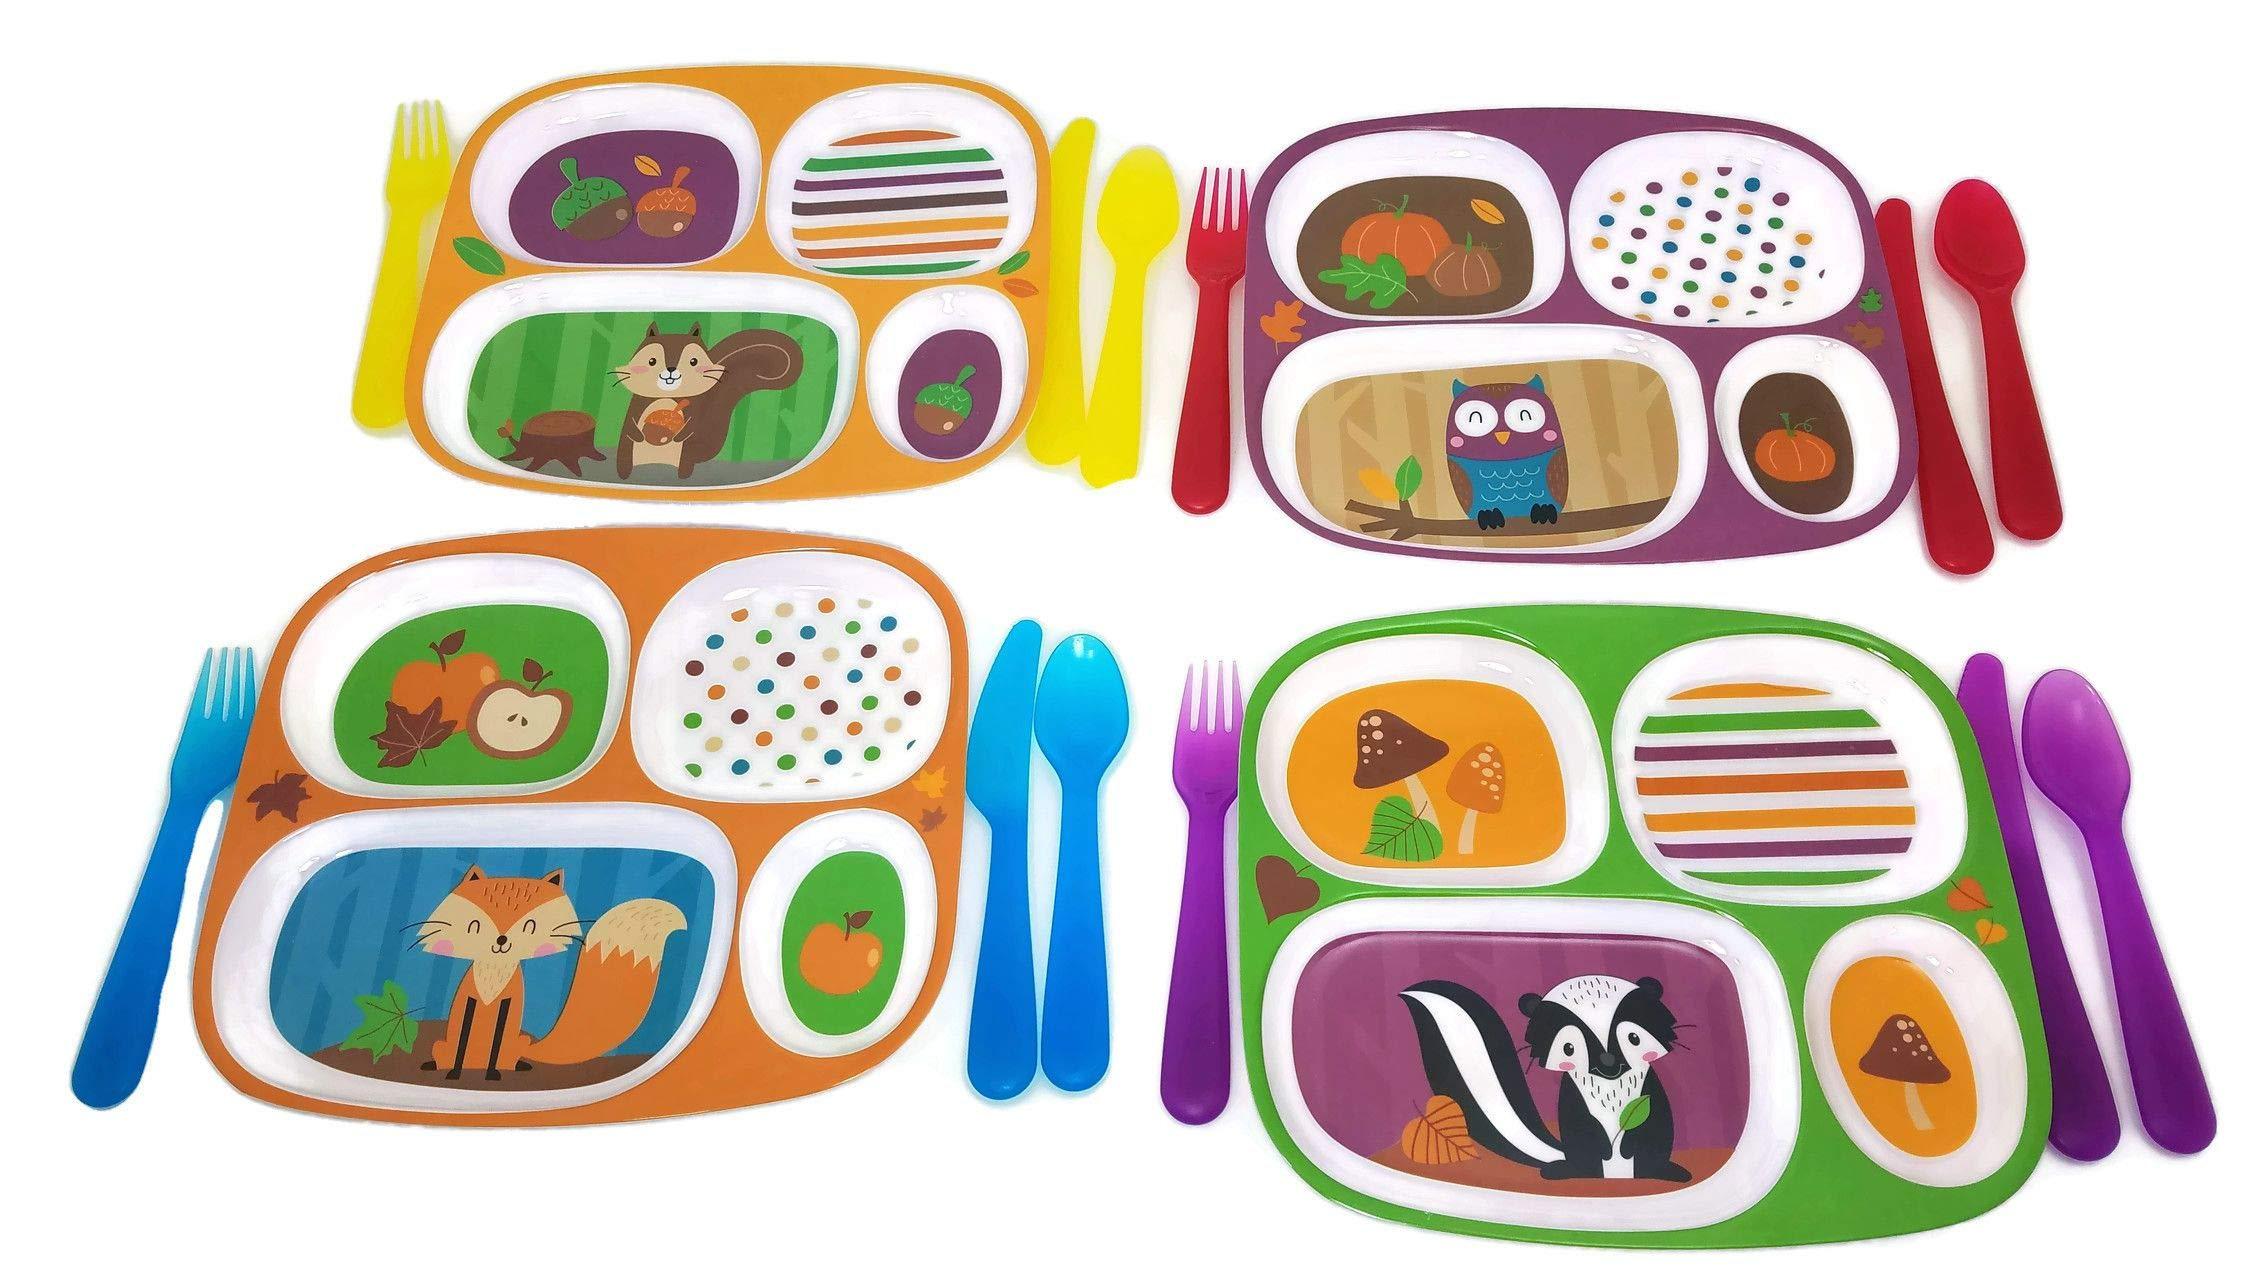 Kids Dinnerware Set of 4 Assorted Divided Plastic Plates with Quality Kids Forks, Knives, and Spoons (Assorted Colors; Colors May Vary), 16 Pieces by Generic